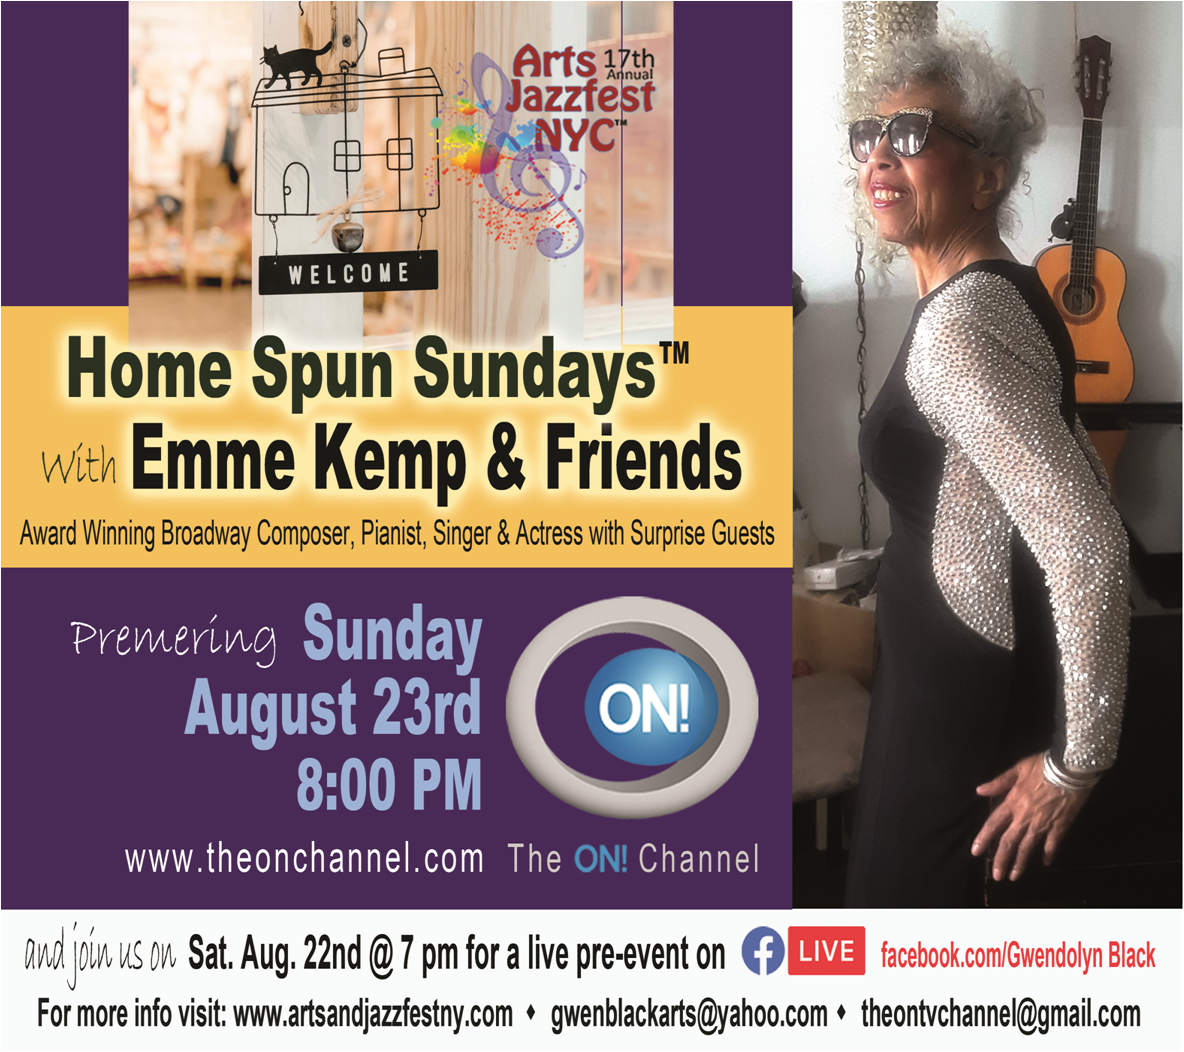 Home Spun Sundays™ with Emme Kemp and Special Friends